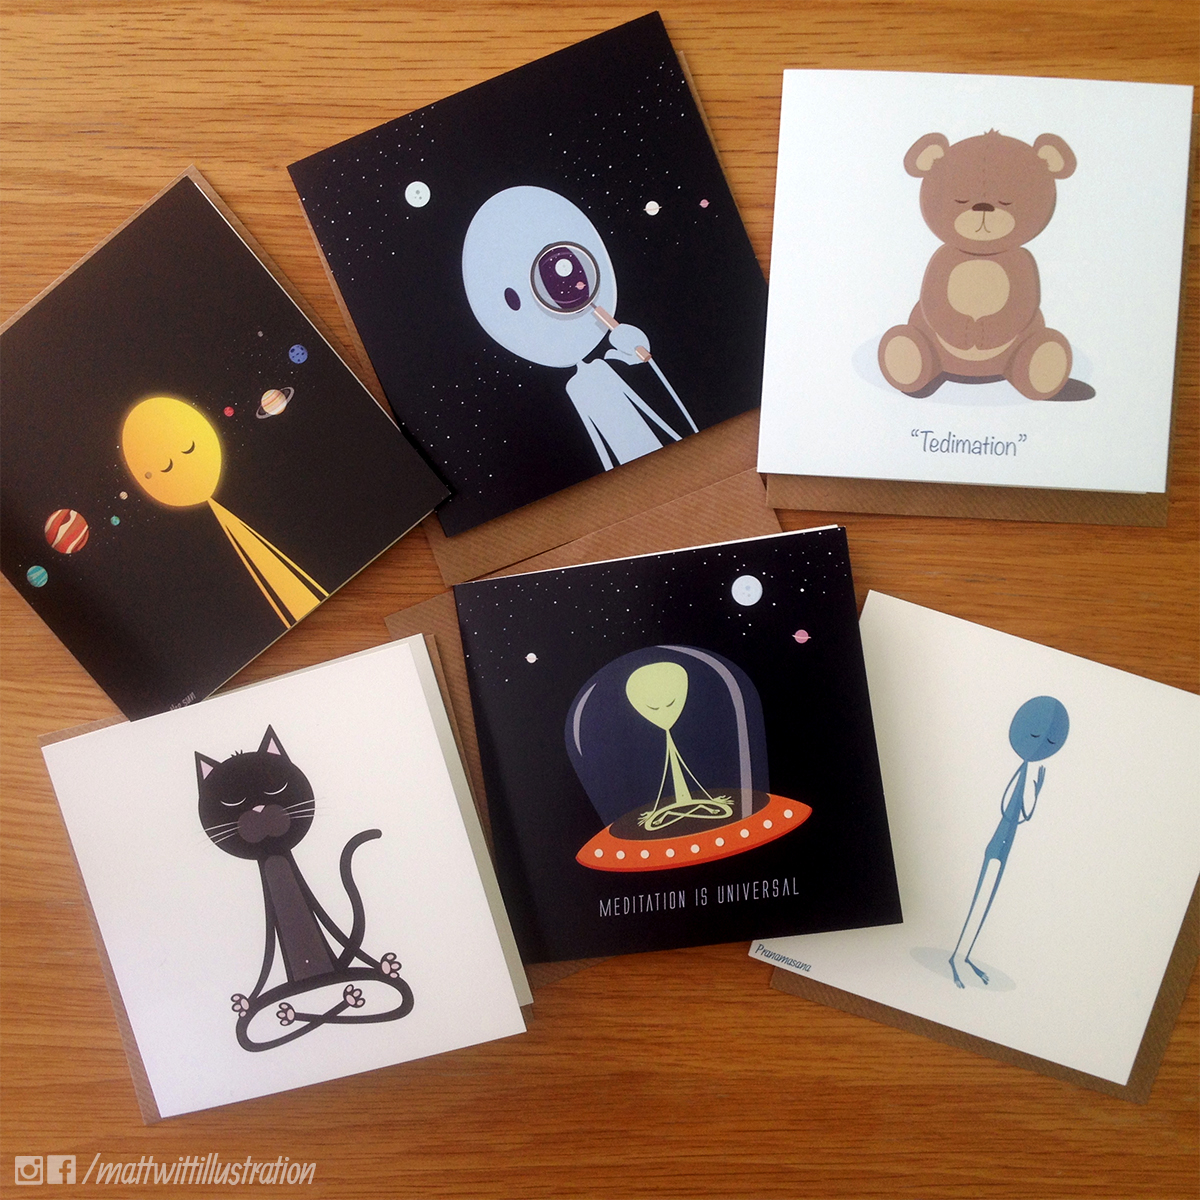 Meditation Greeting Cards Pack Of 6 Illustrated Greetings Cards